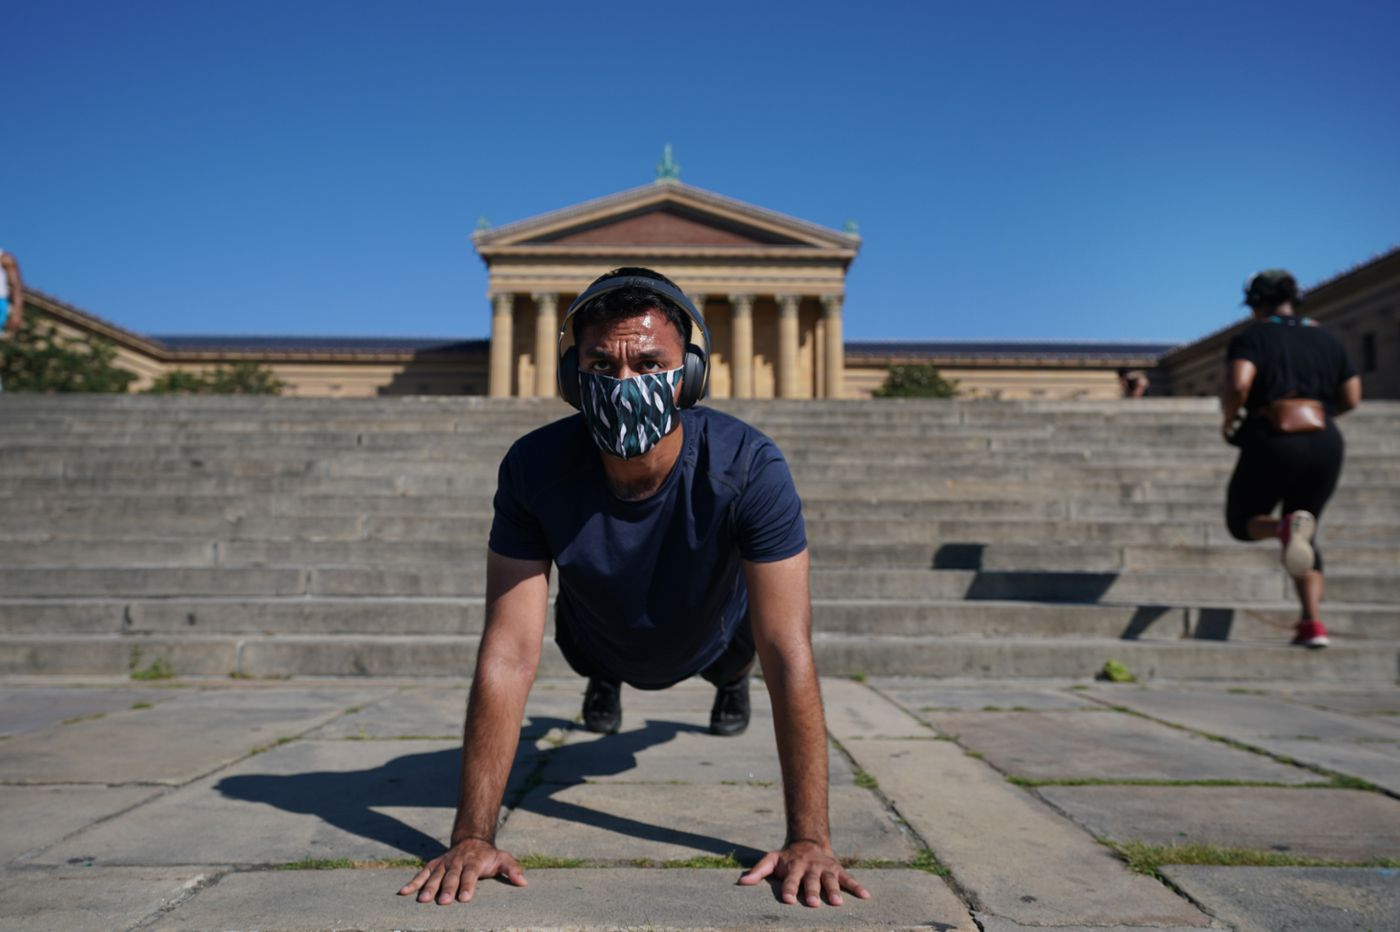 How to work out in the heat during the pandemic